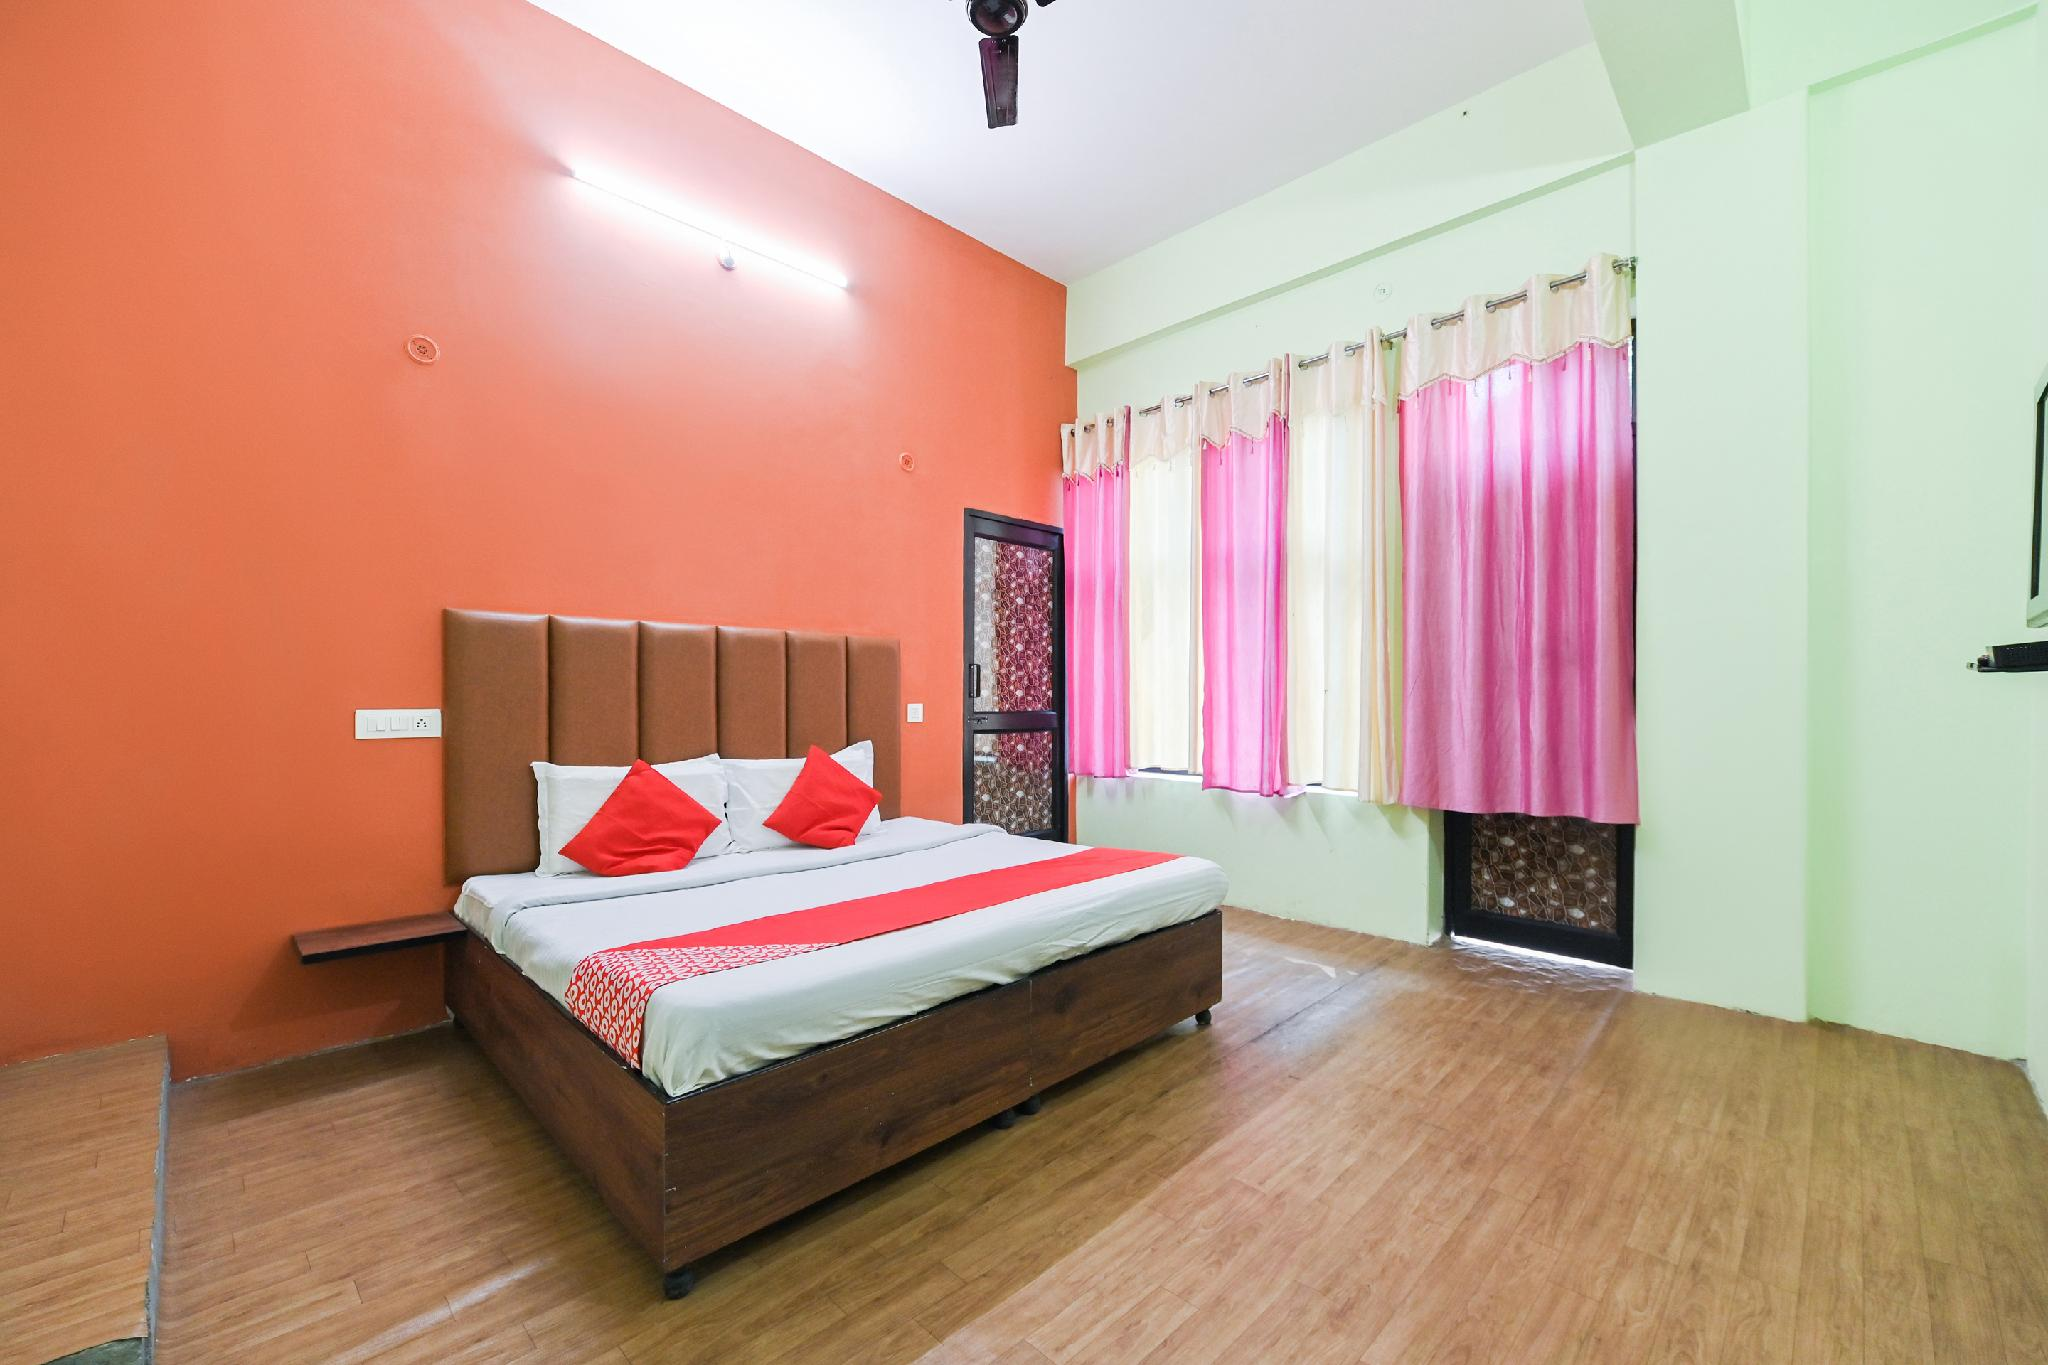 Hotel Hill Orchid Best Budget Hotel in Aizawl